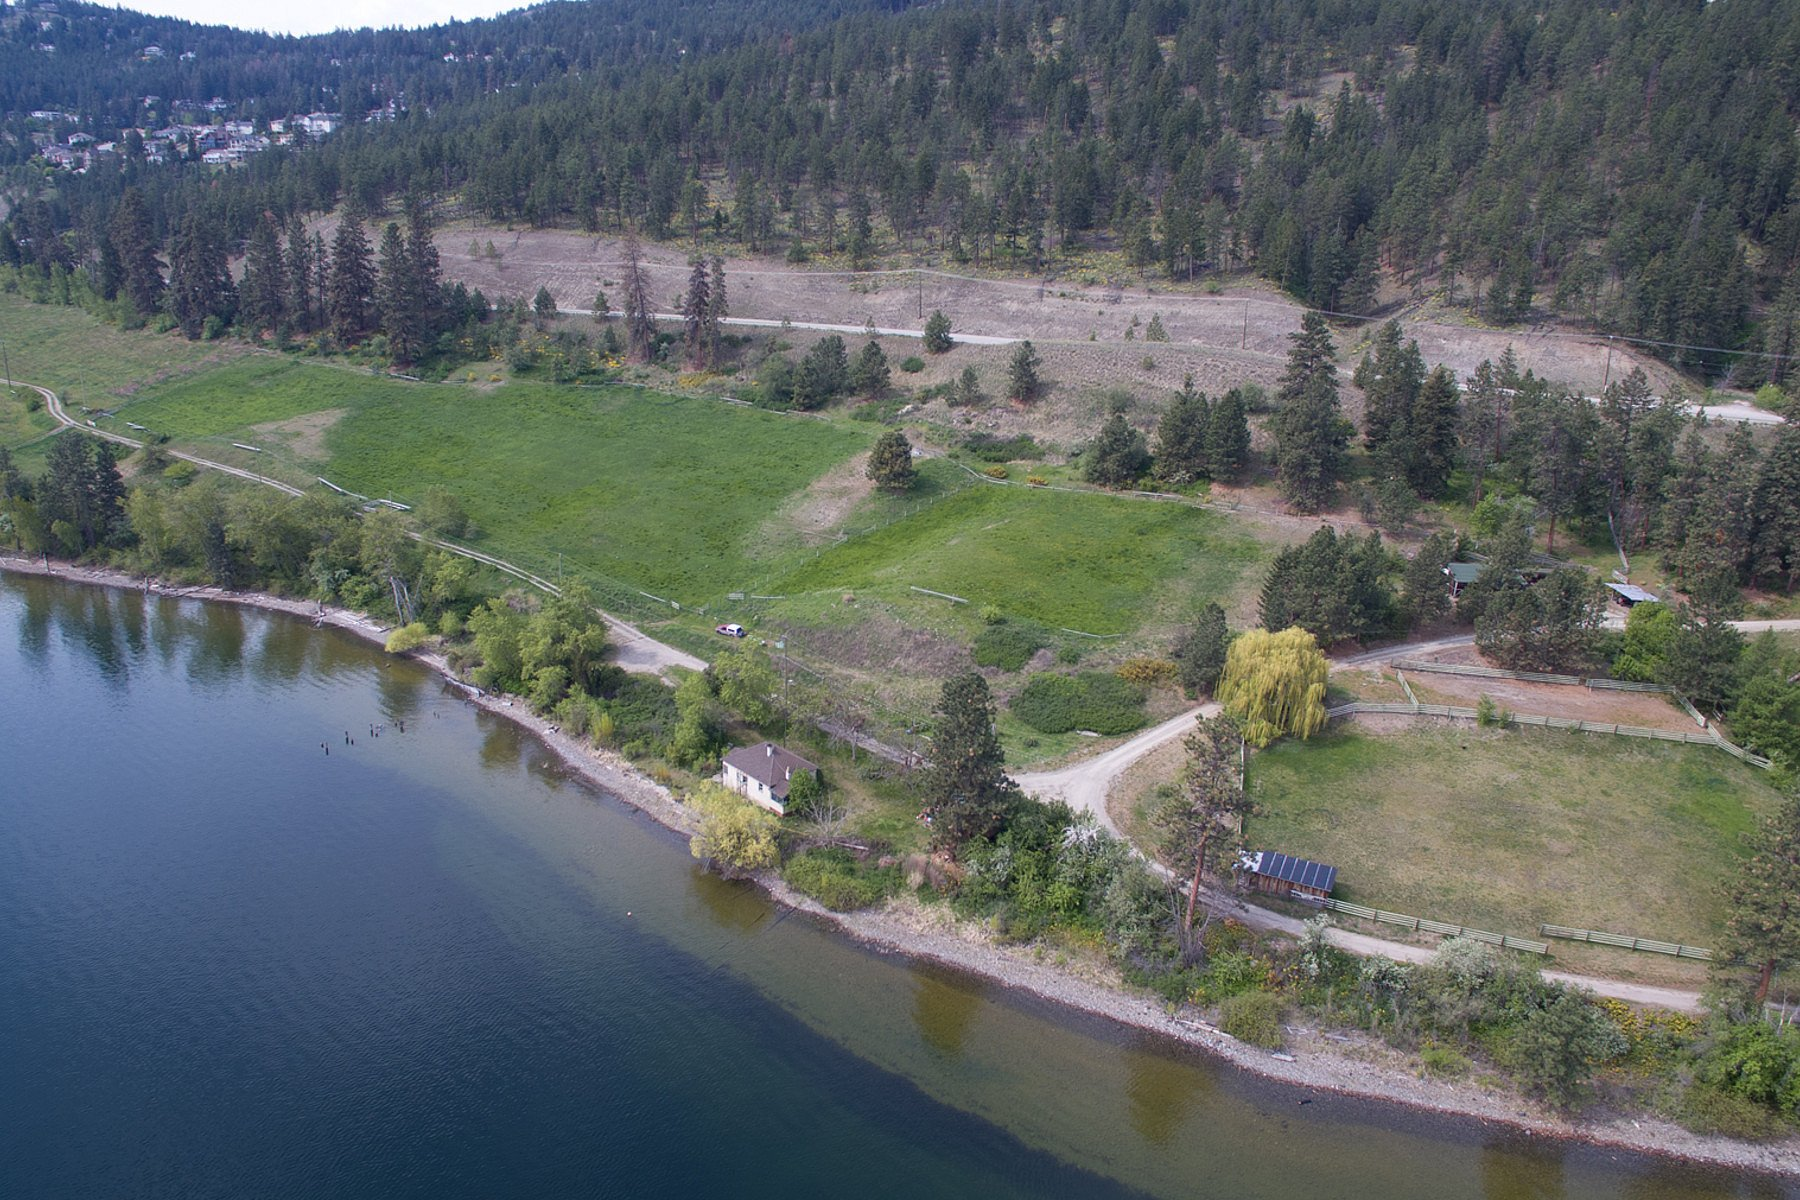 Land in West Kelowna, British Columbia, Canada 1